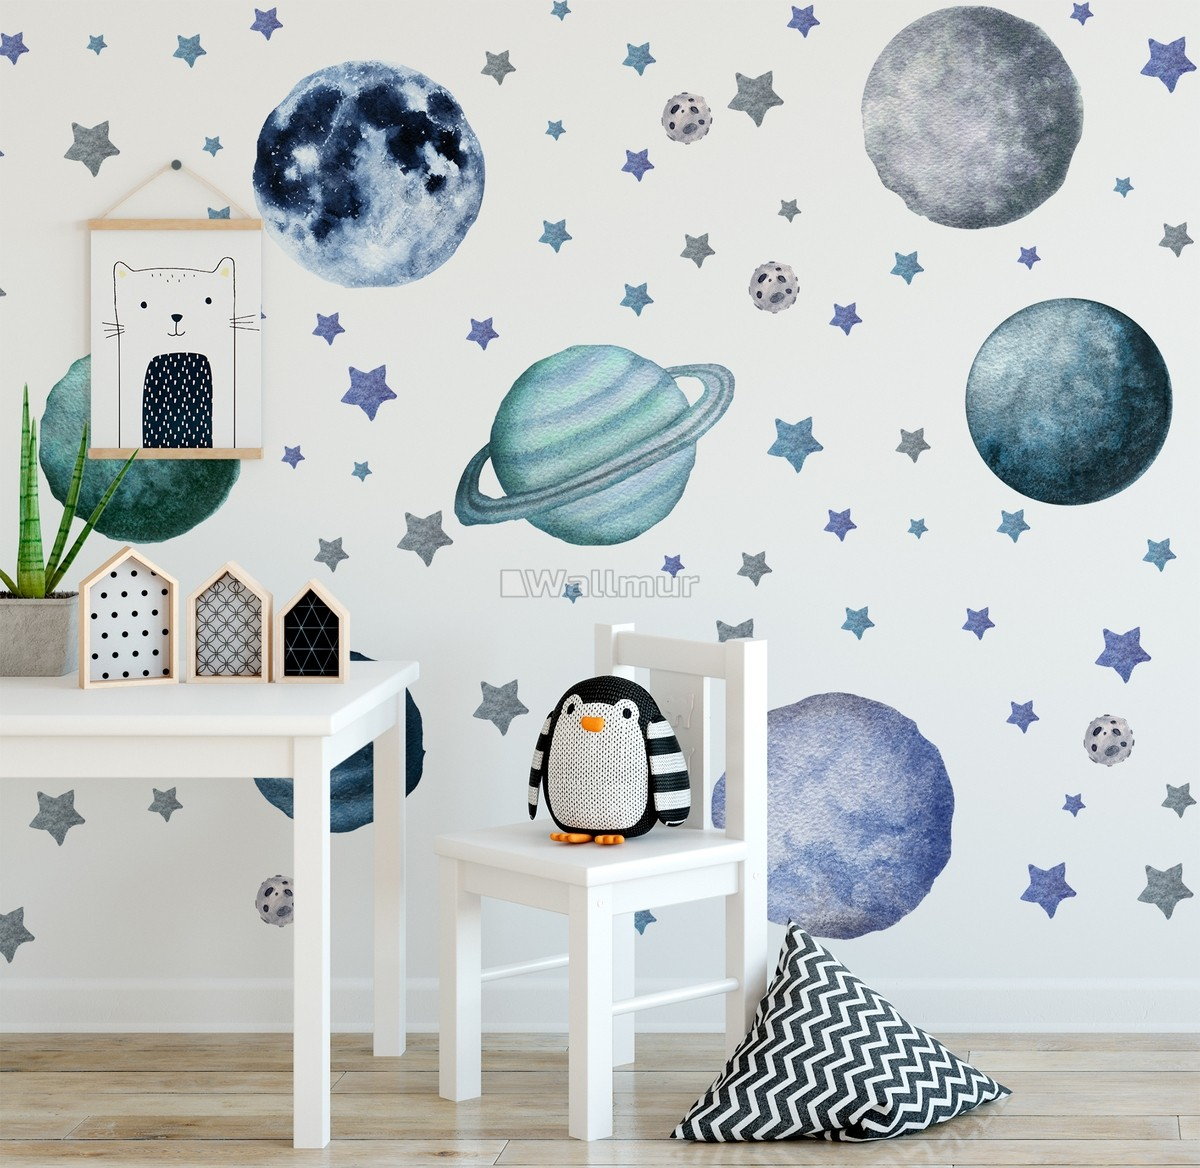 Watercolor Planets And Stars Wall Decal Sticker Wallmur